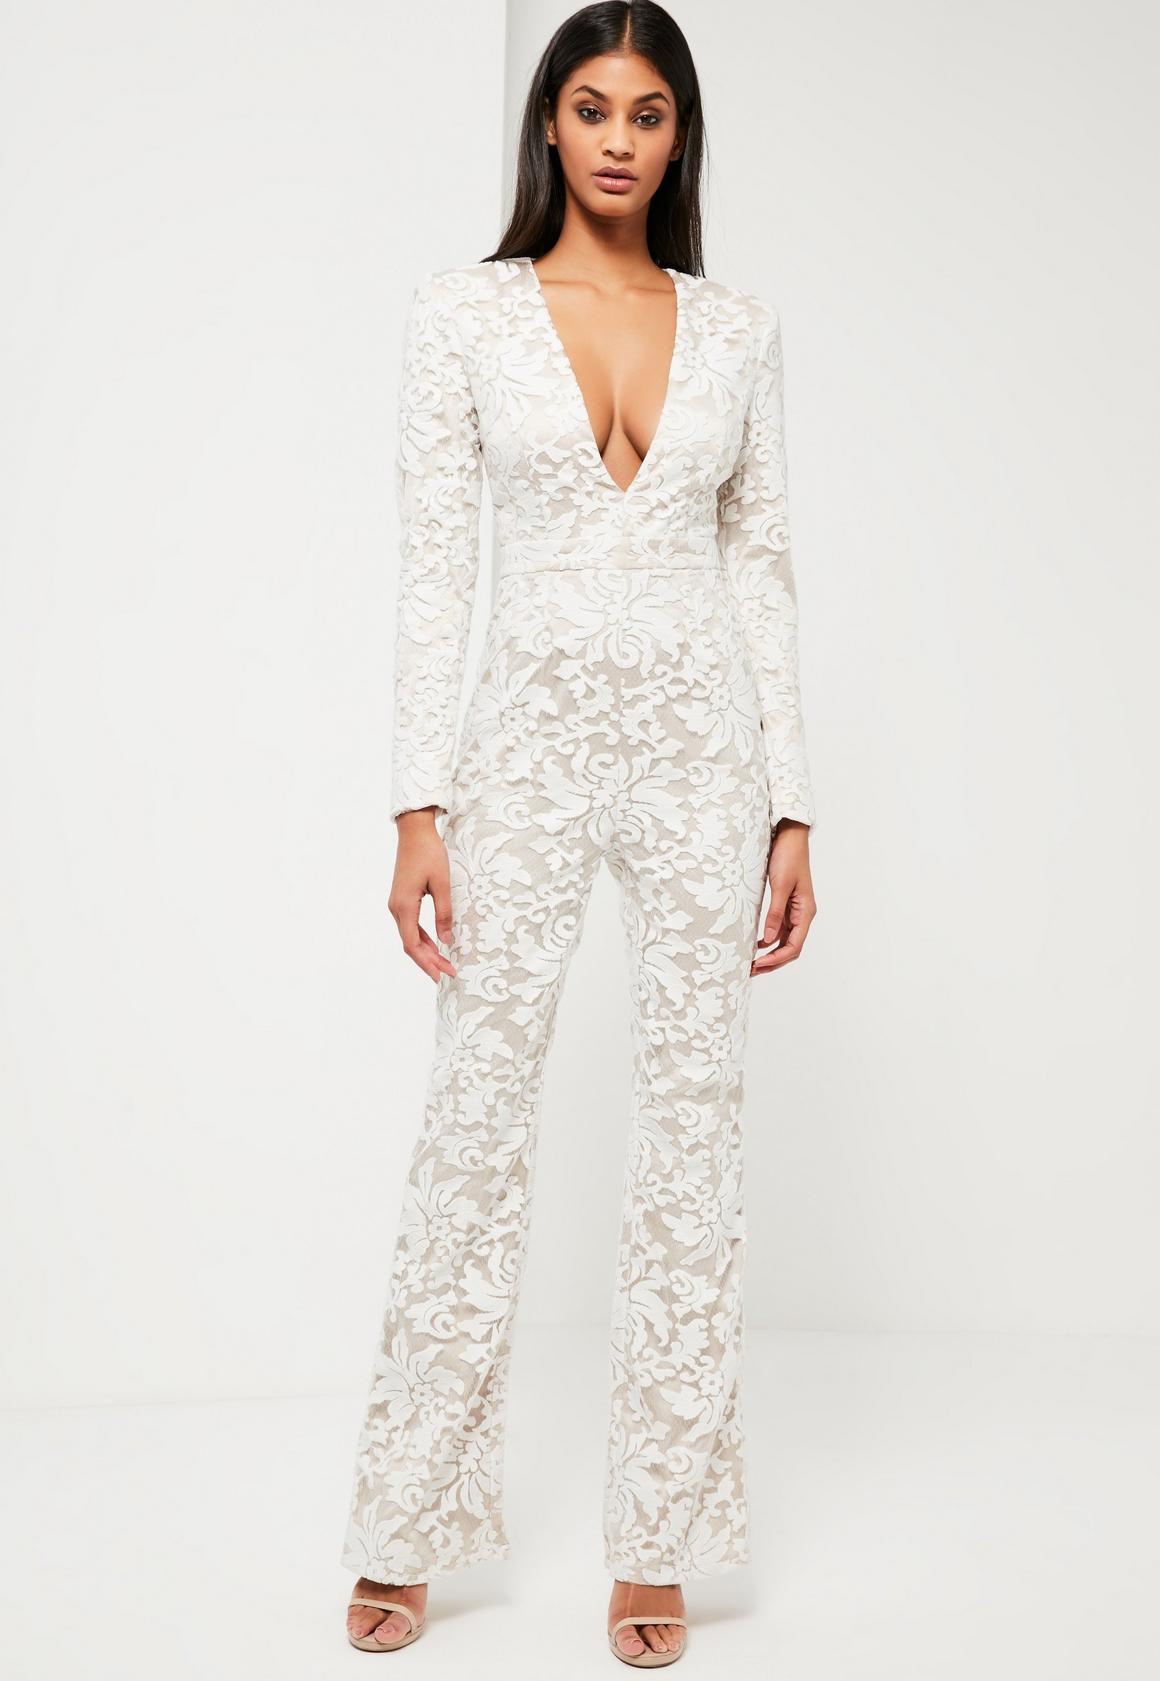 Lace Jumpsuit | Women's Lace Jumpsuits - Missguided